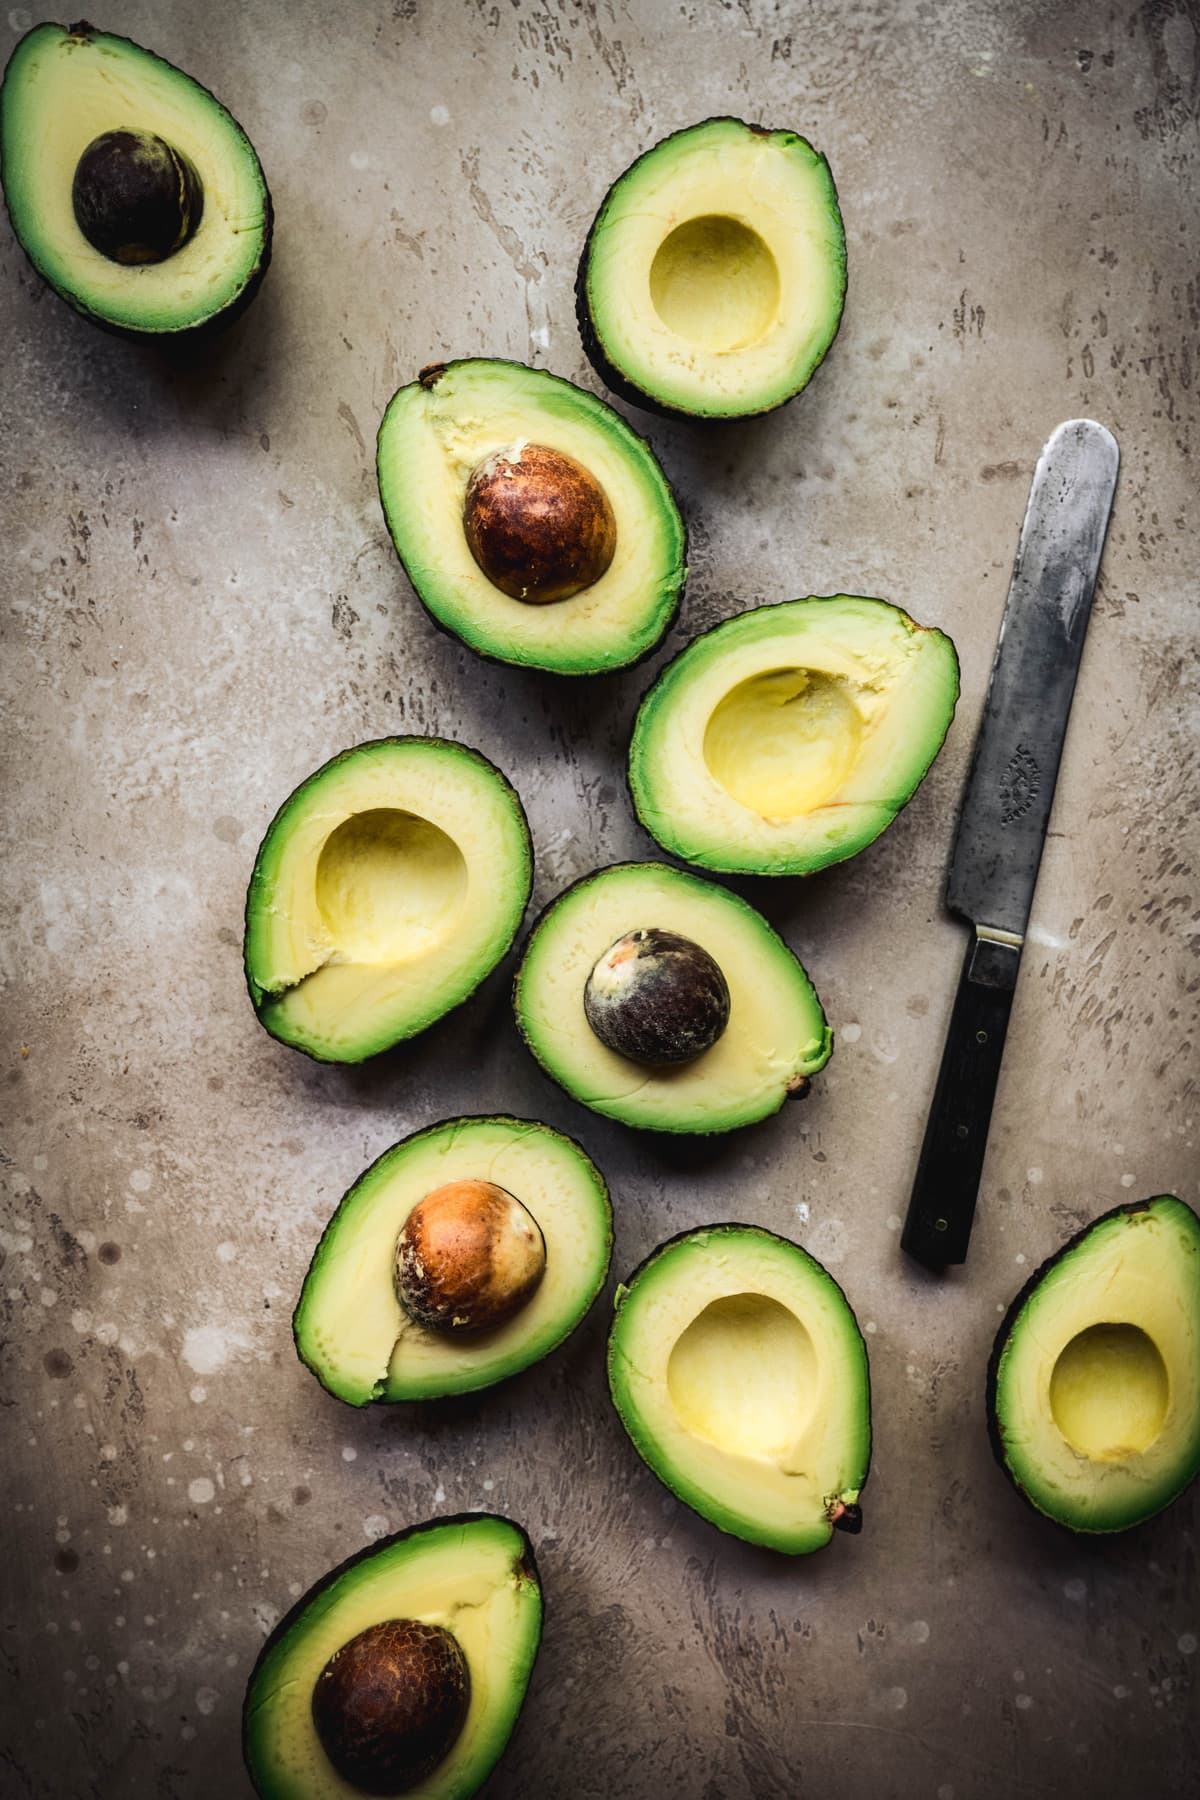 Beautiful photo of avocados sliced in half on a rustic background